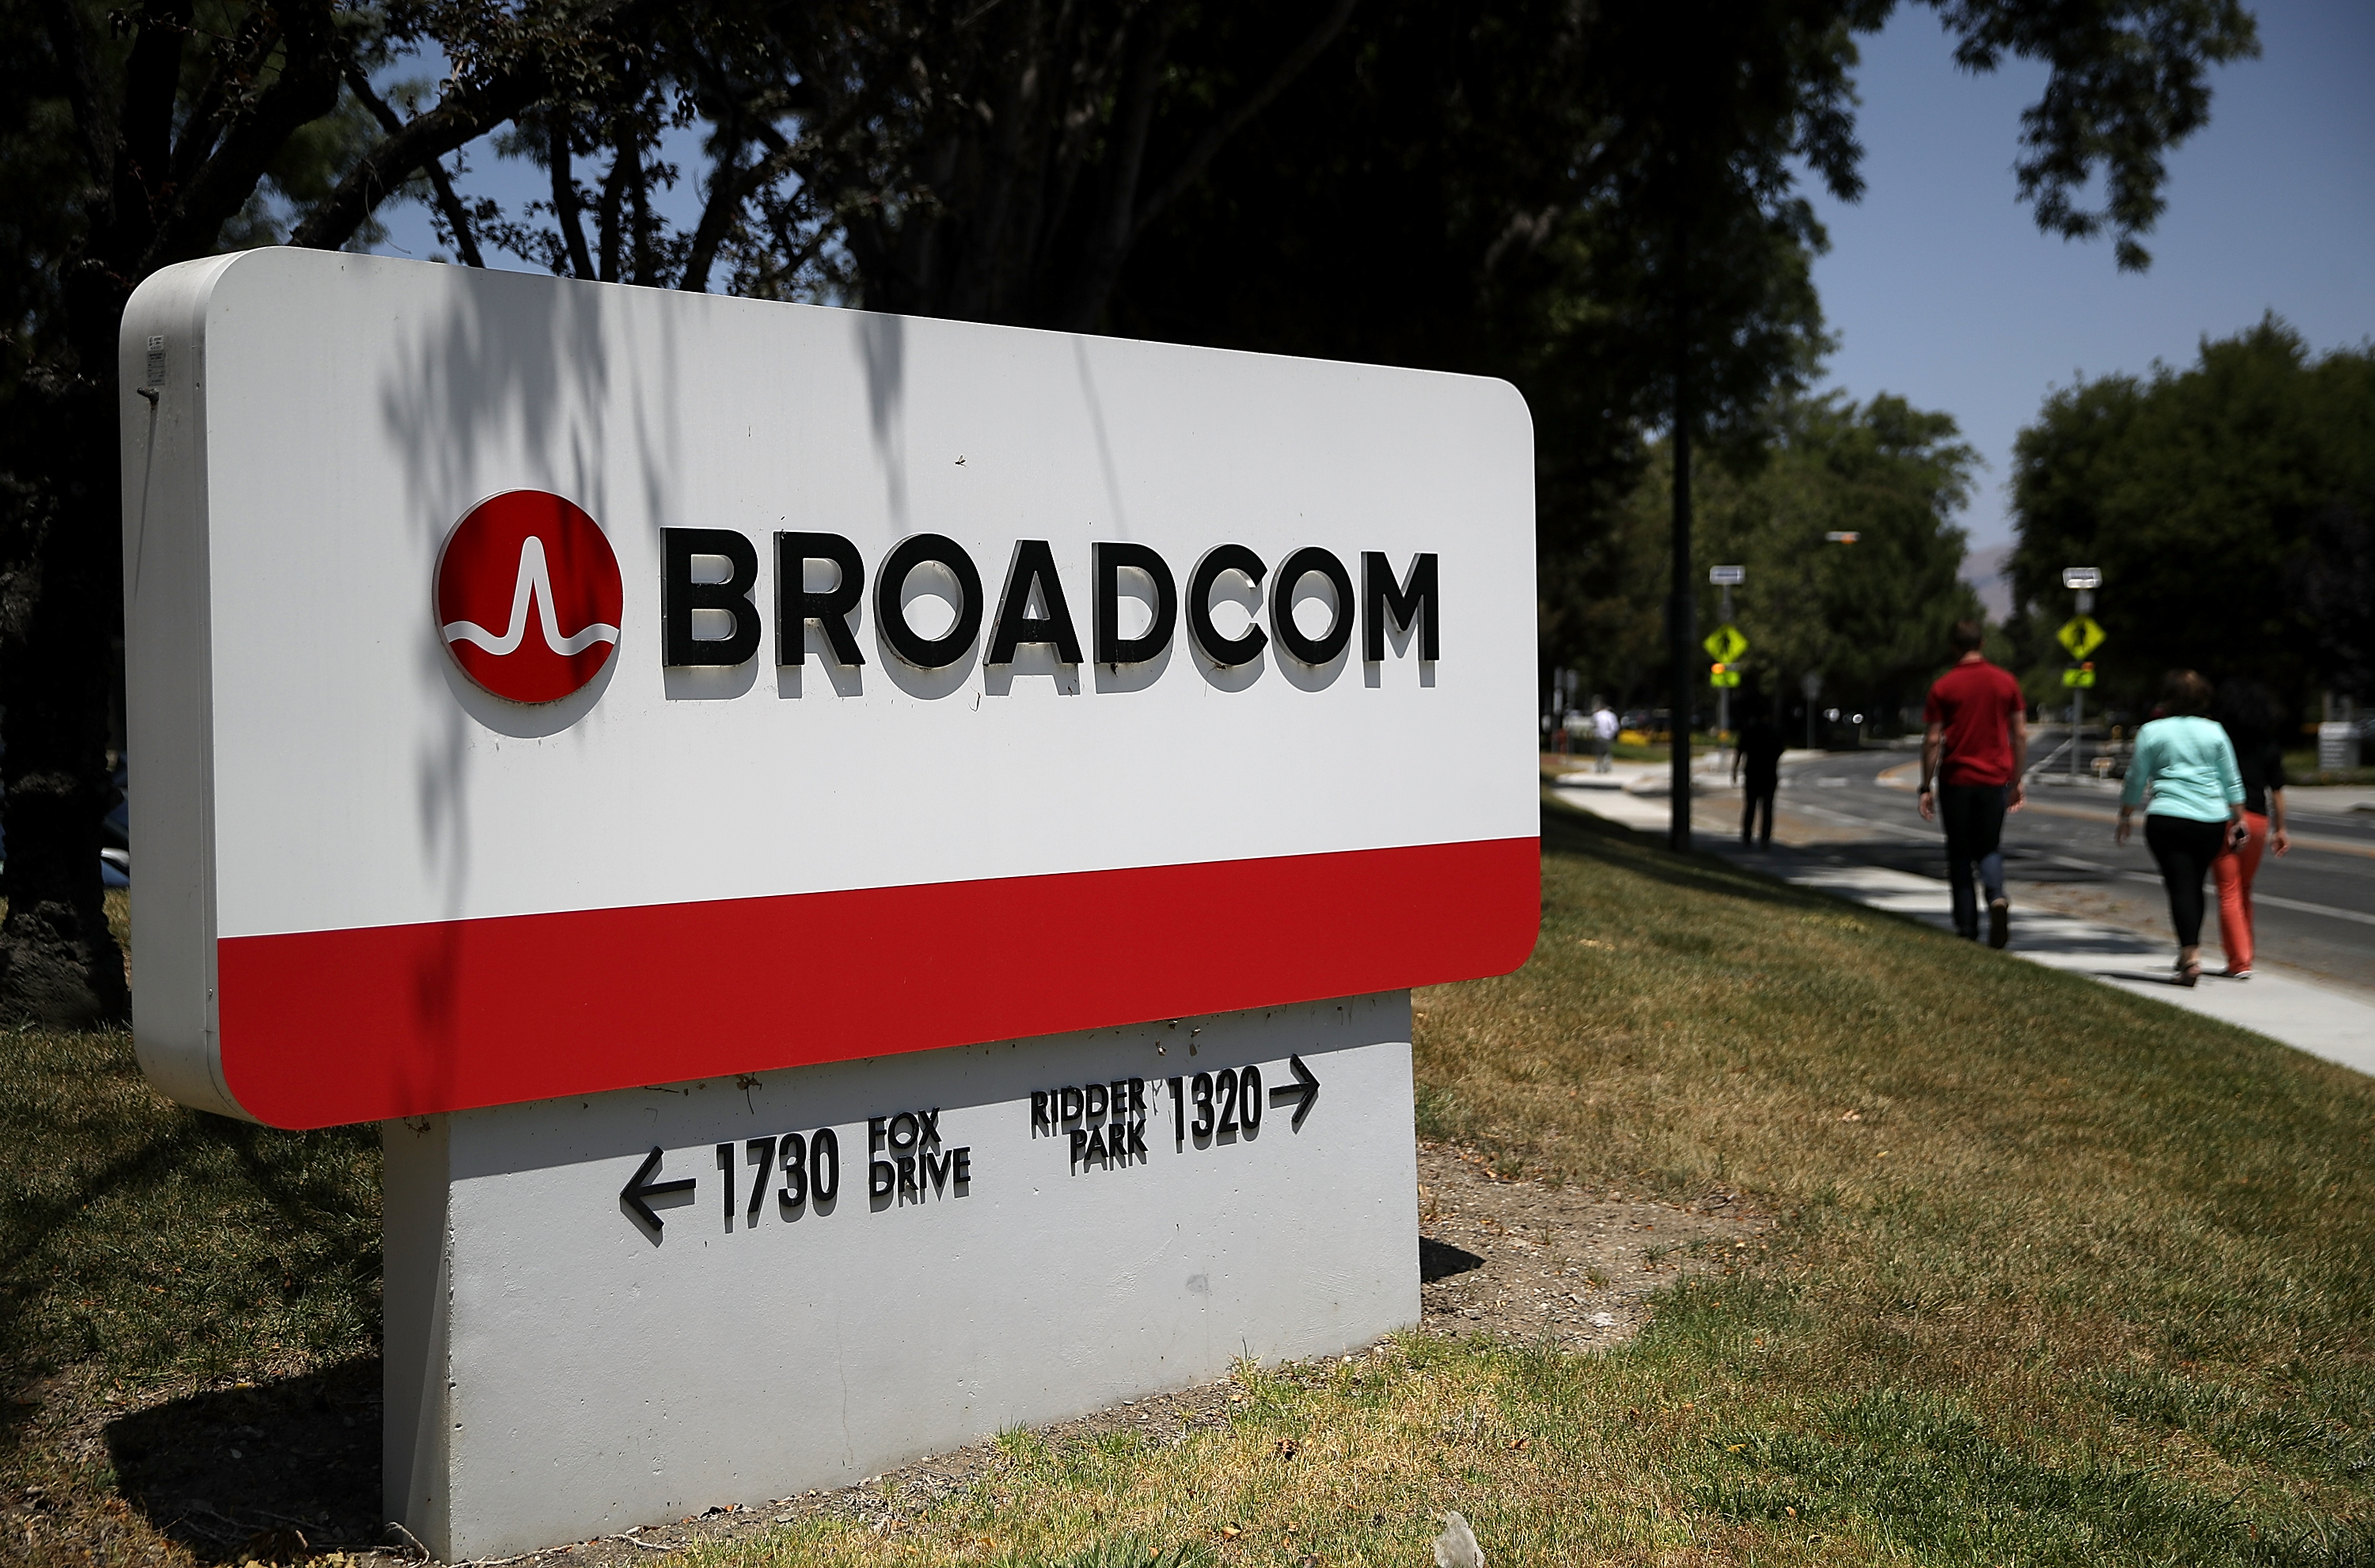 techcrunch.com - Frederic Lardinois - Broadcom acquires CA Technologies for $18.9B in cash